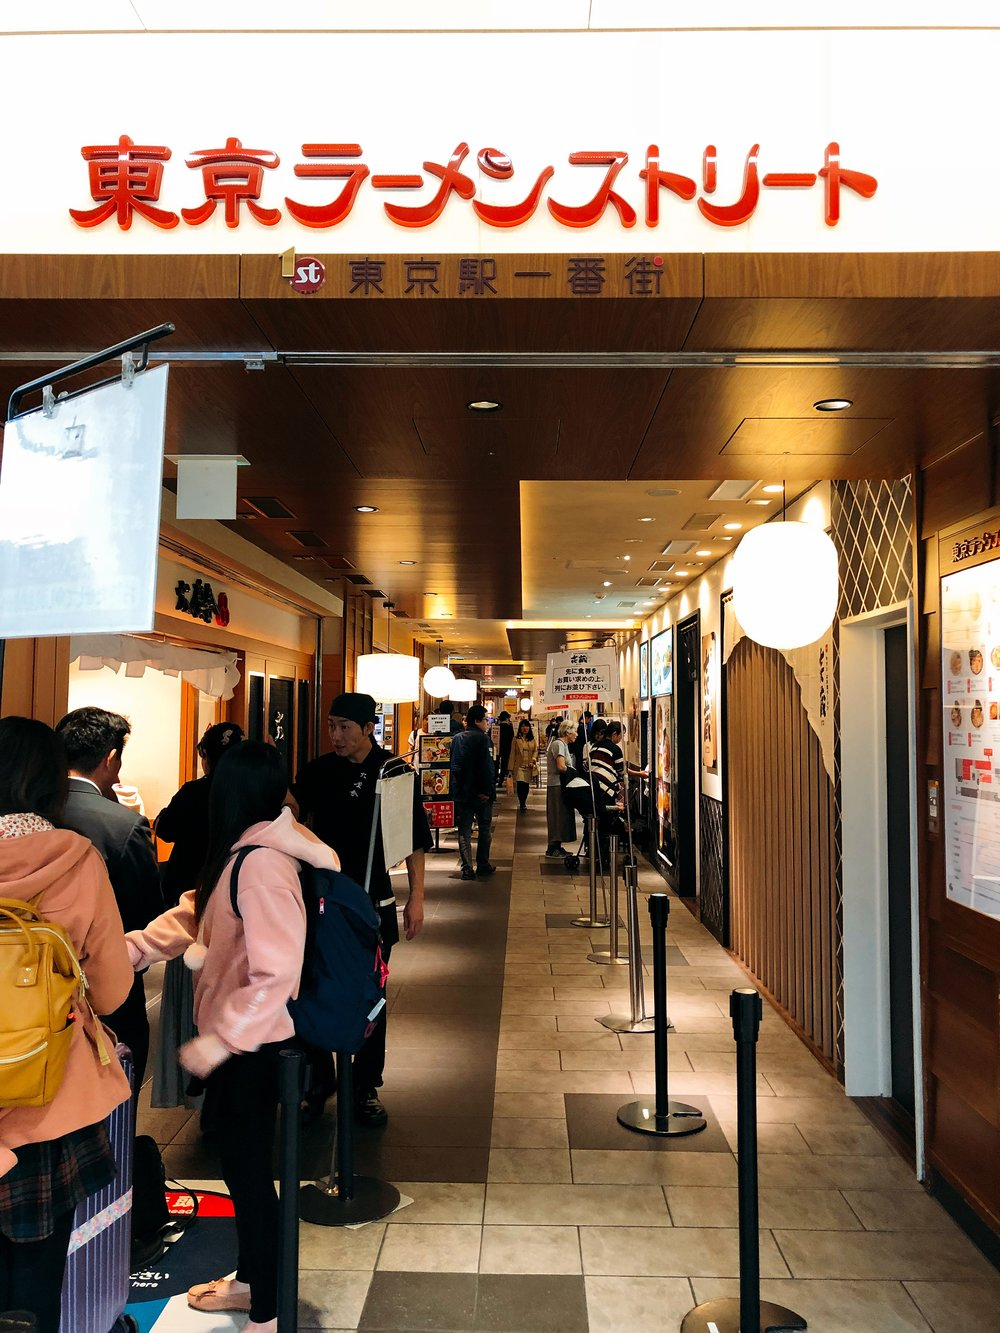 The Entrance To Ramen Street And Rokurinsha